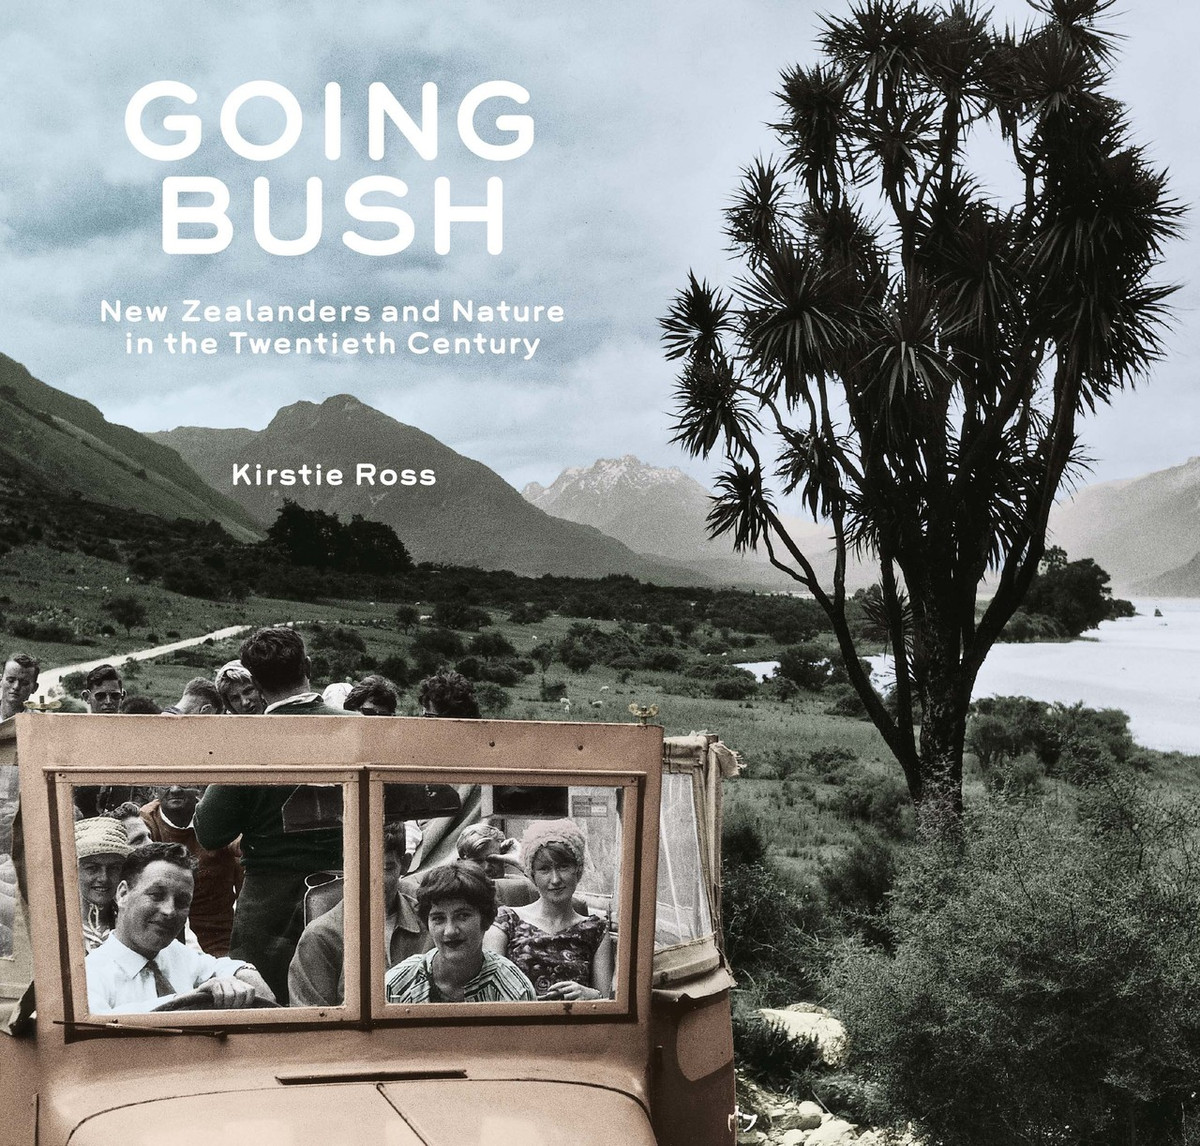 Going Bush: New Zealanders and Nature in the Twentieth Century by Kirstie Ross